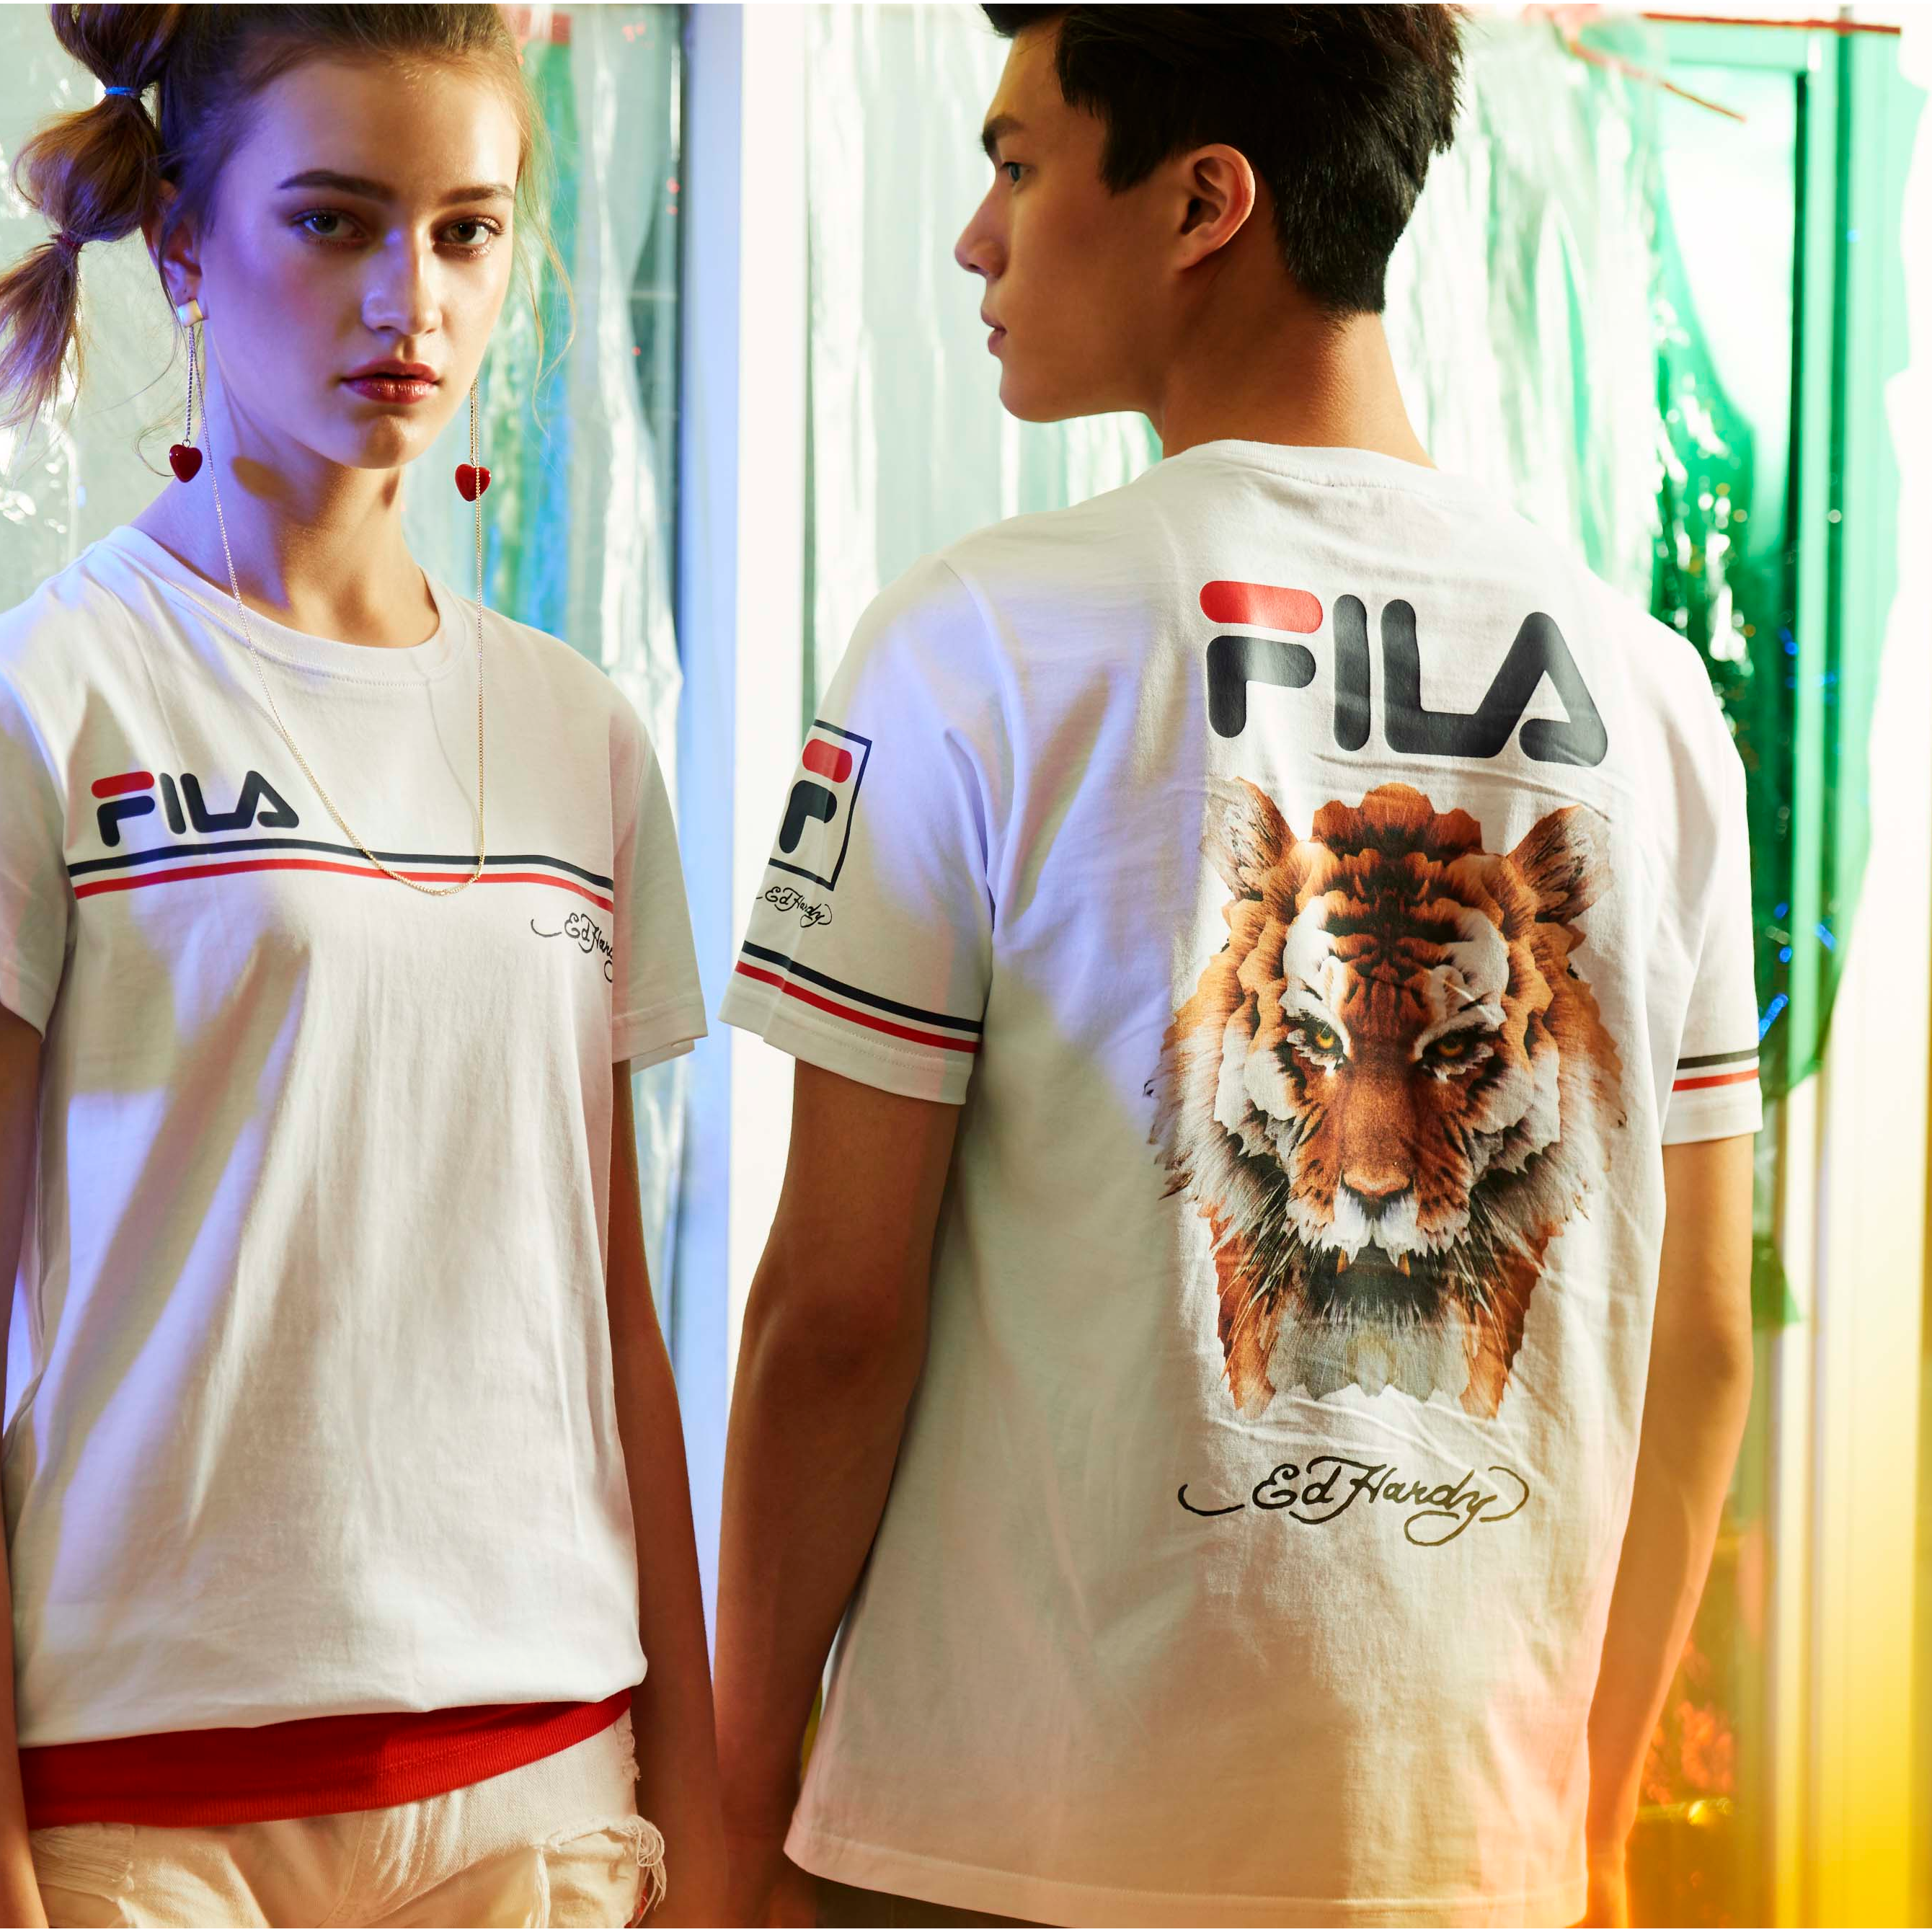 FILA X Ed Hardy 聯乘系列